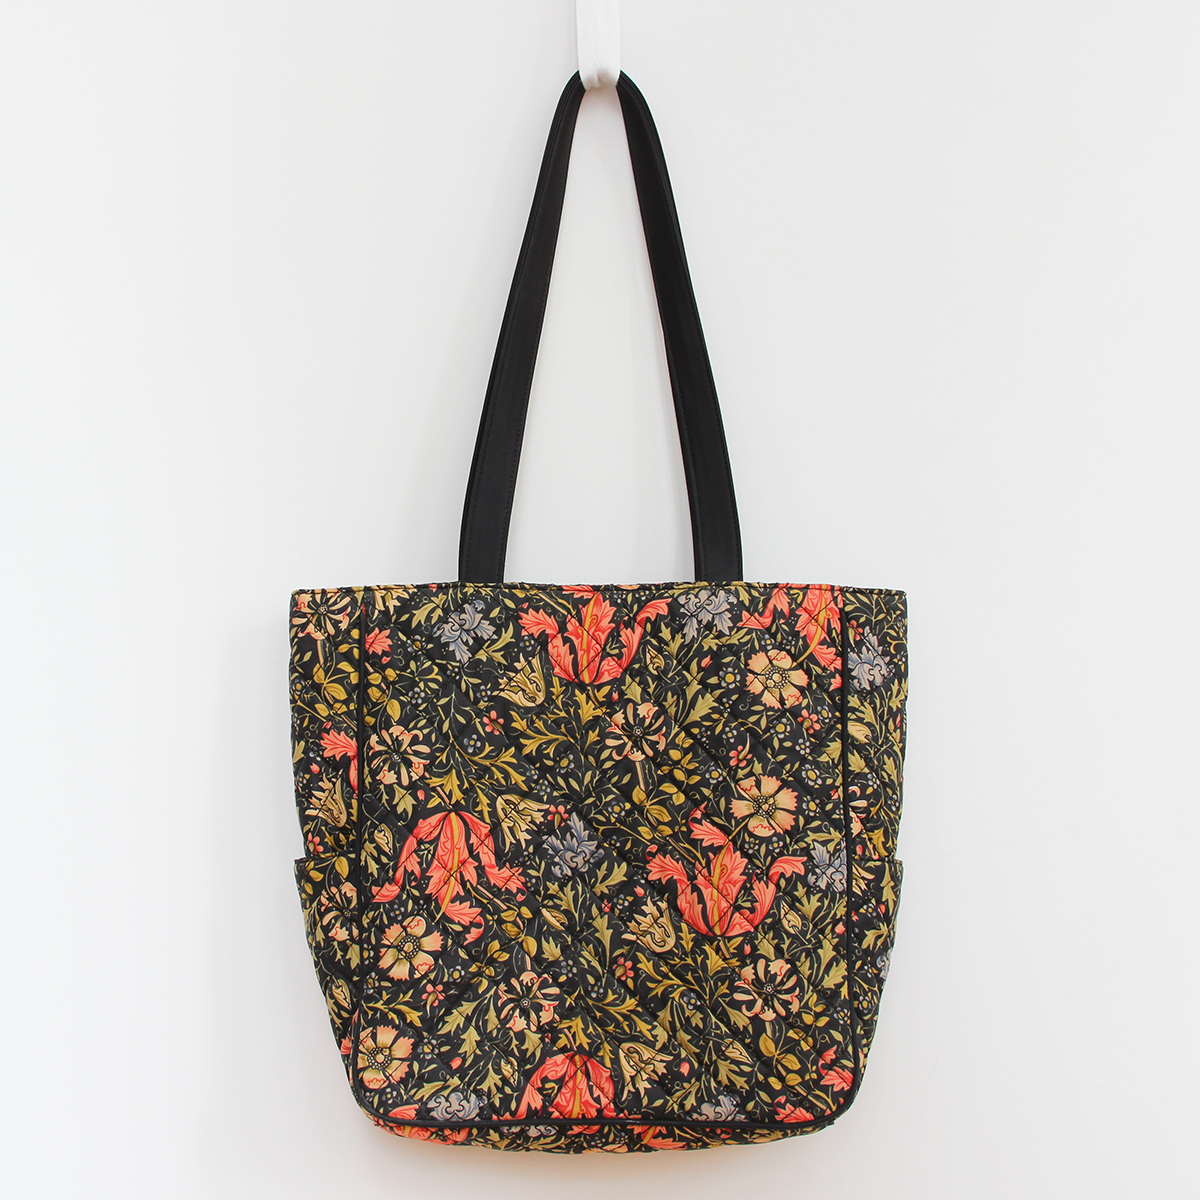 Custom Quilted Tote Bags with print